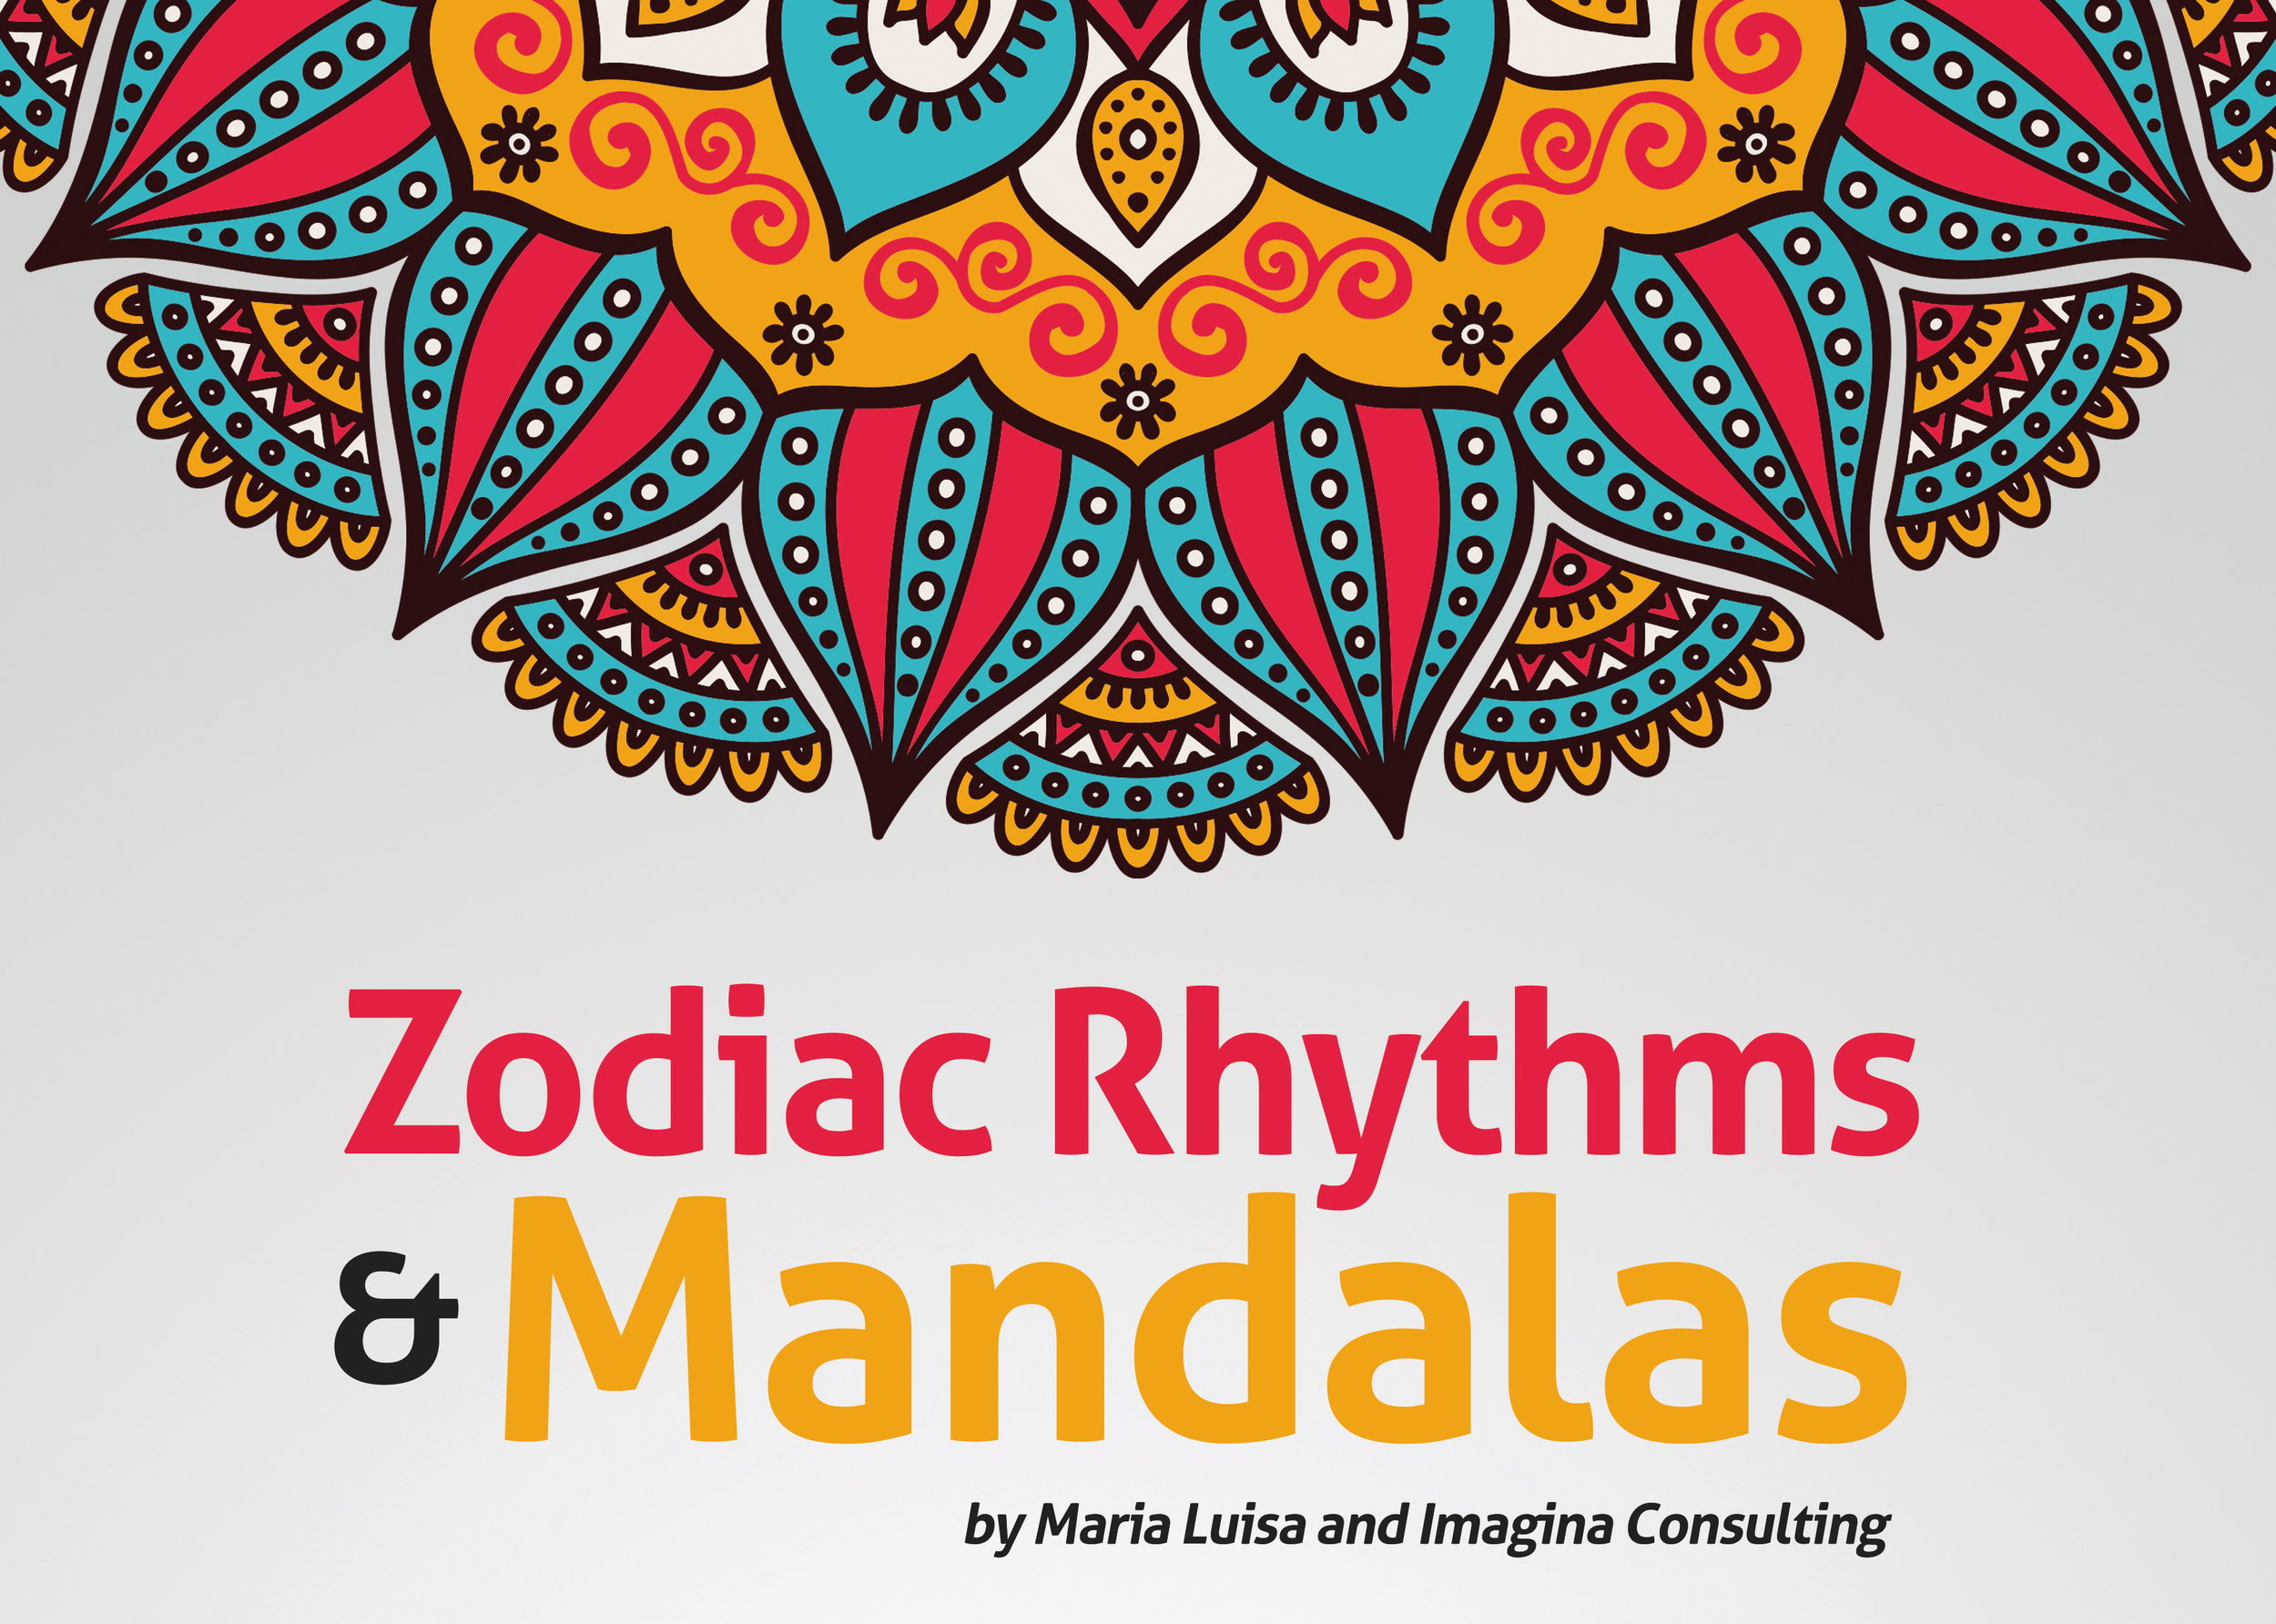 Zodiac Rhythms and Mandalas - September 21, 2017 from 6-830 PM138 W 15th Street, NYCEmbody the natural of the Zodiac in this playful, inspirational workshop. Dive into the flow of experiential, interactive and artistic activities that will have your experience the structure of the Zodiac. Connect to the twelve signs, their elements, polarities, qualities and temperments. Discover how astrology reveals your personality and informs your relationships. Join Imagina dn our guest, Maria Luisa Ruiz, Ph.D. in this memorable evening.